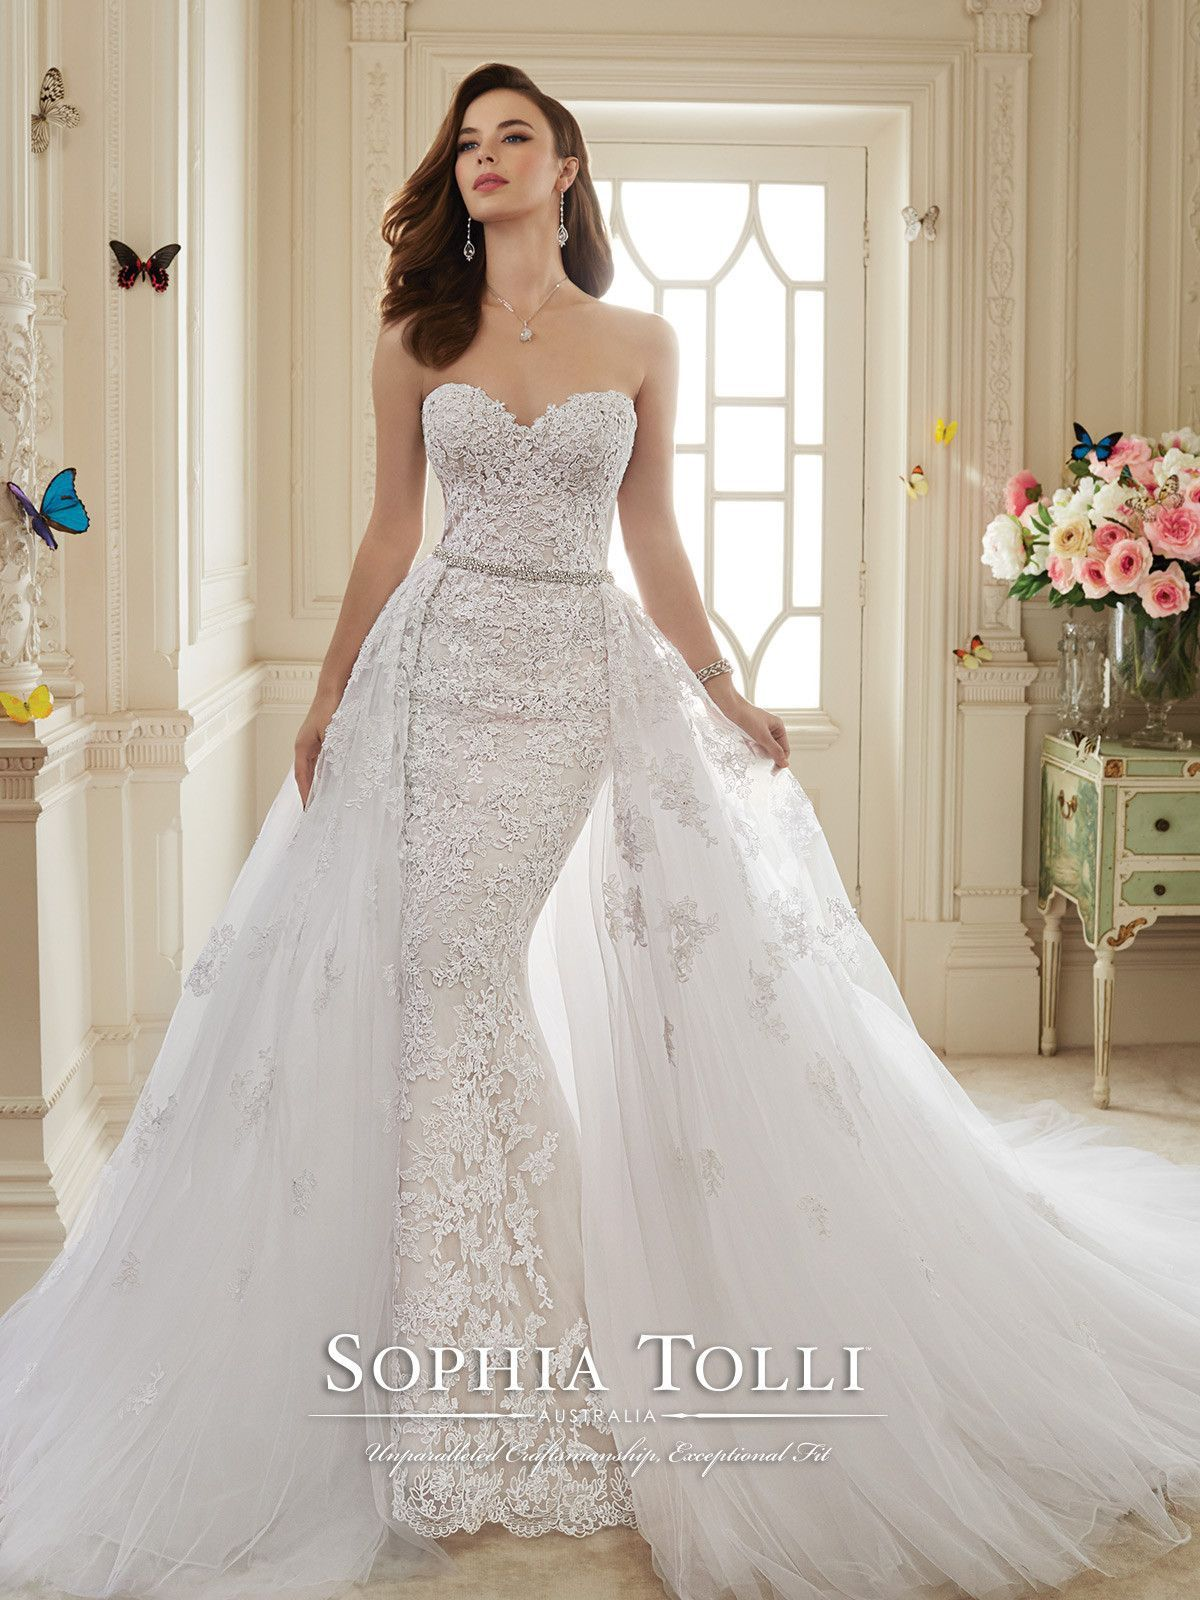 Sophia Tolli Couture - Maeve - Y11652 - All Dressed Up, Bridal Gown